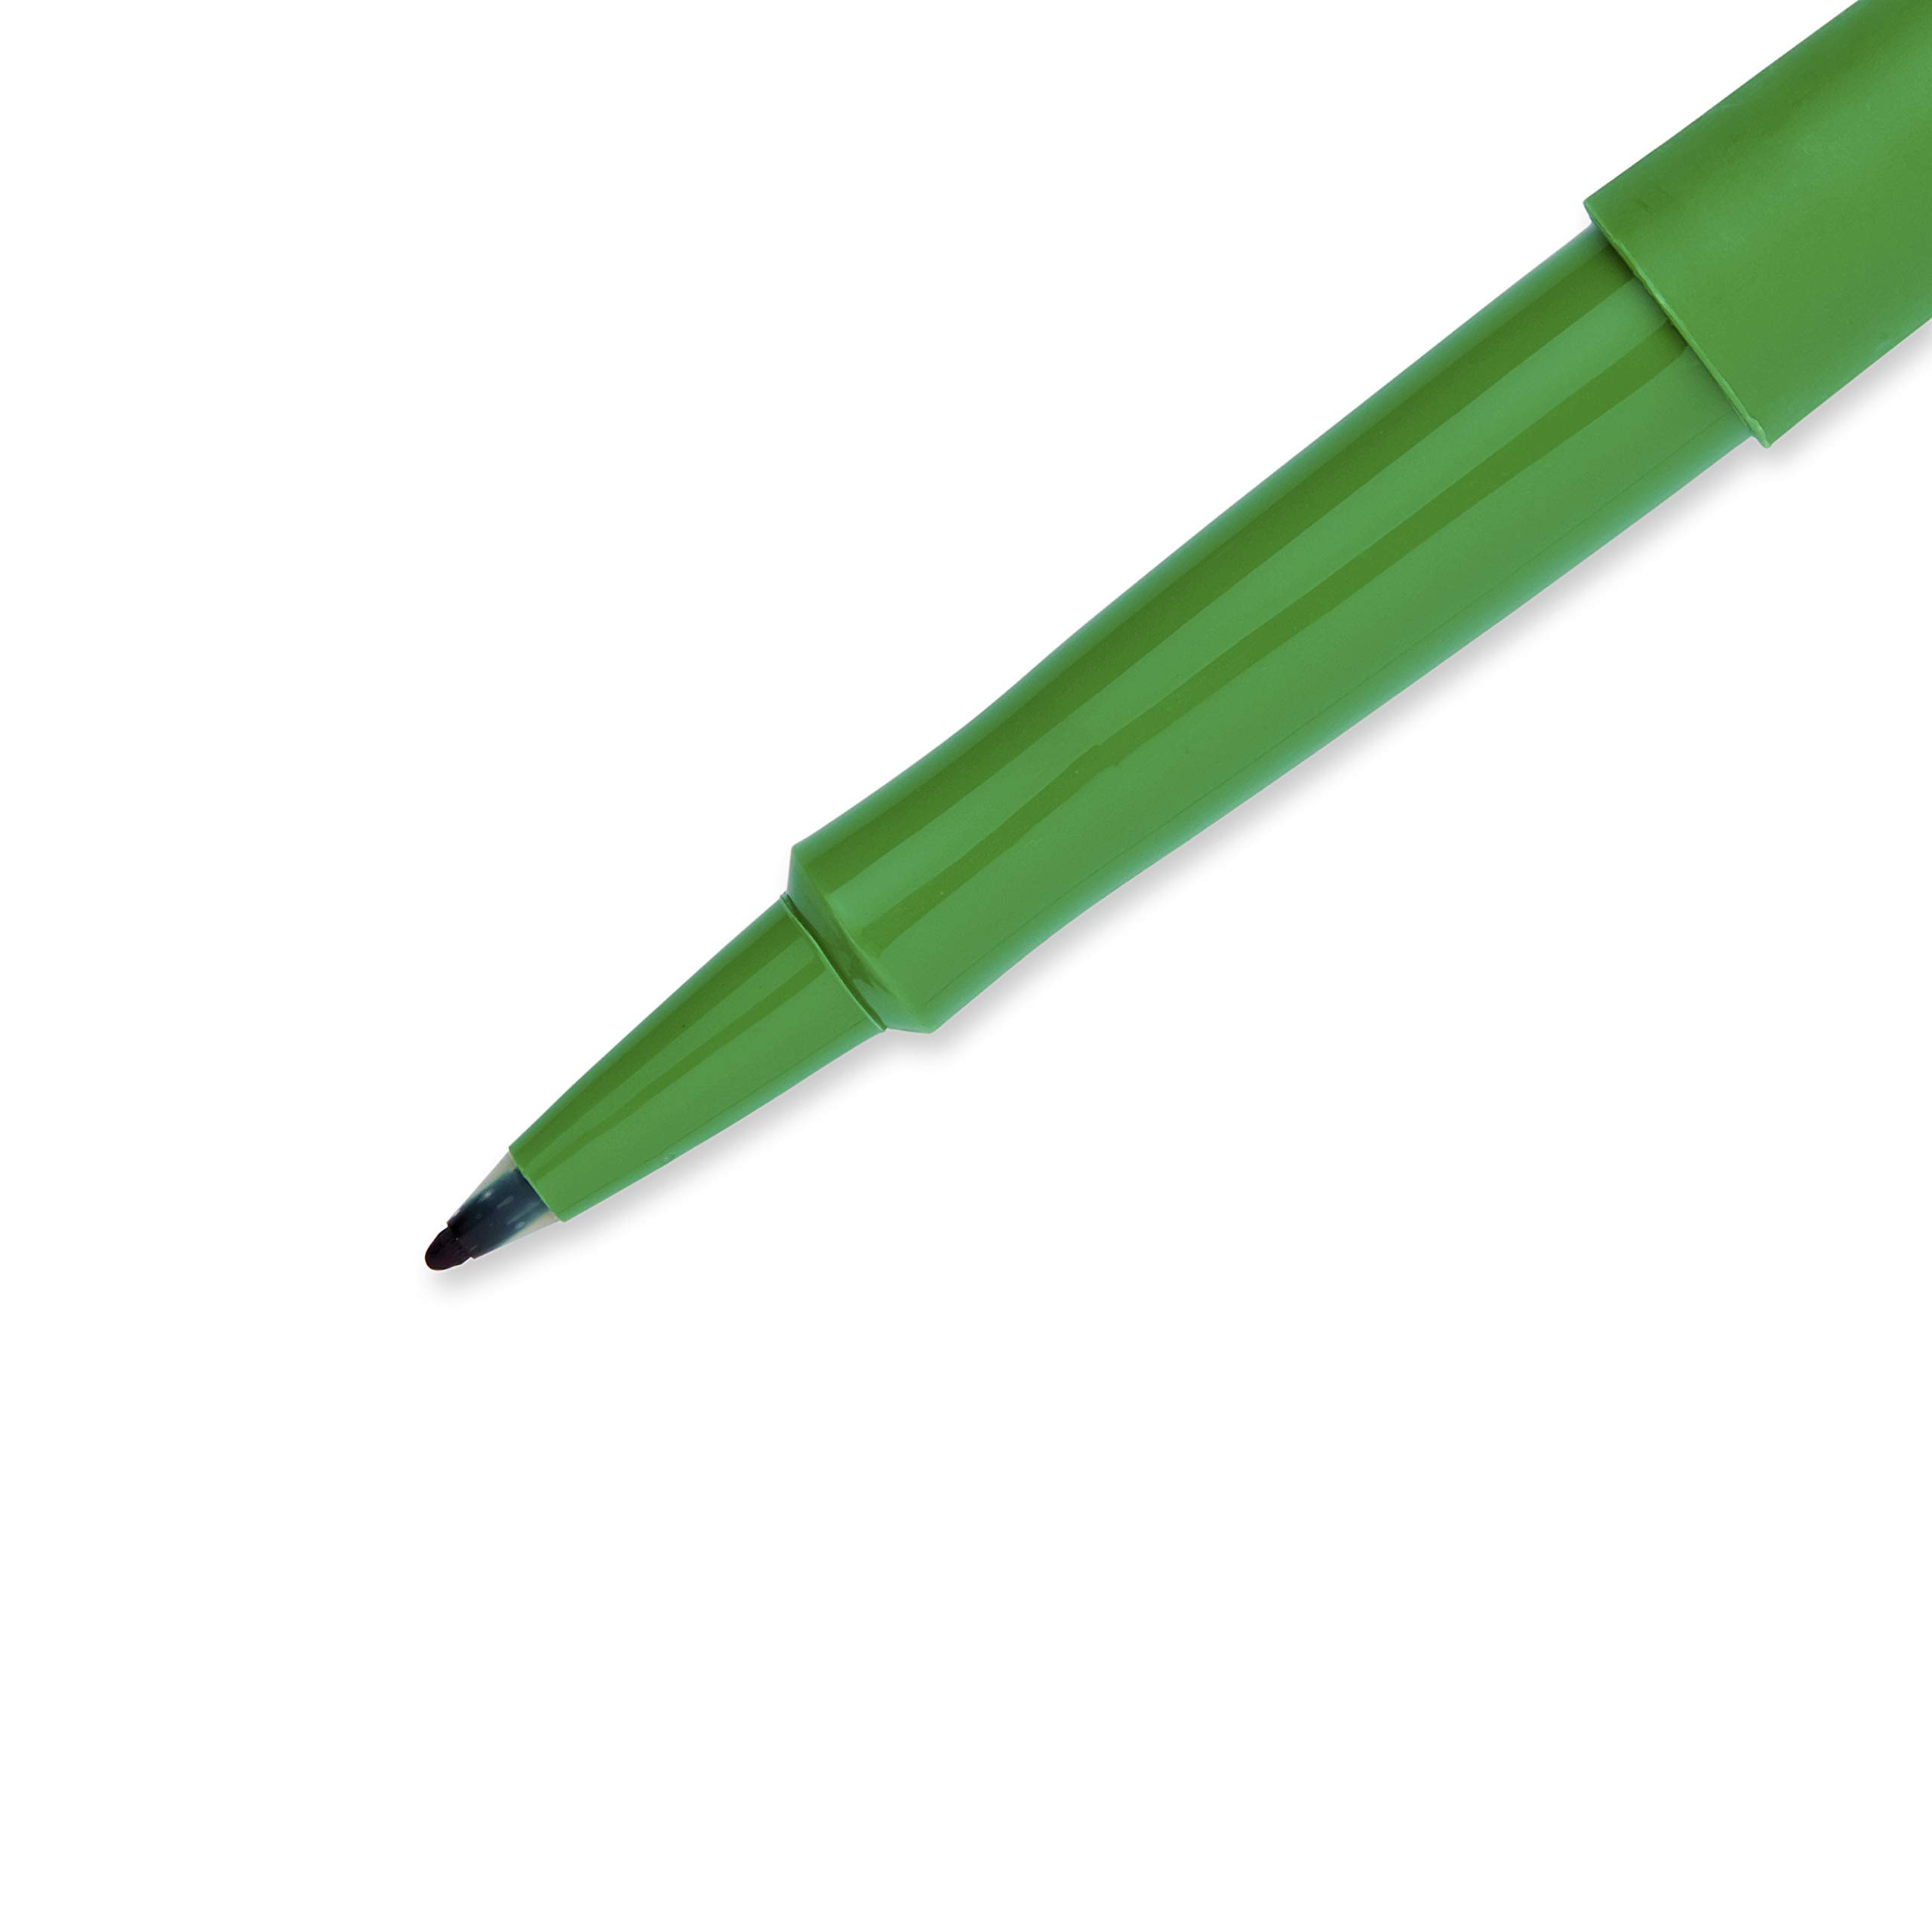 Paper Mate Flair Felt Tip Pens, Medium Point (0.7mm), 12 Green, 12 Blue & 12 Black, Total of 36 Pens by Paper Mate (Image #4)